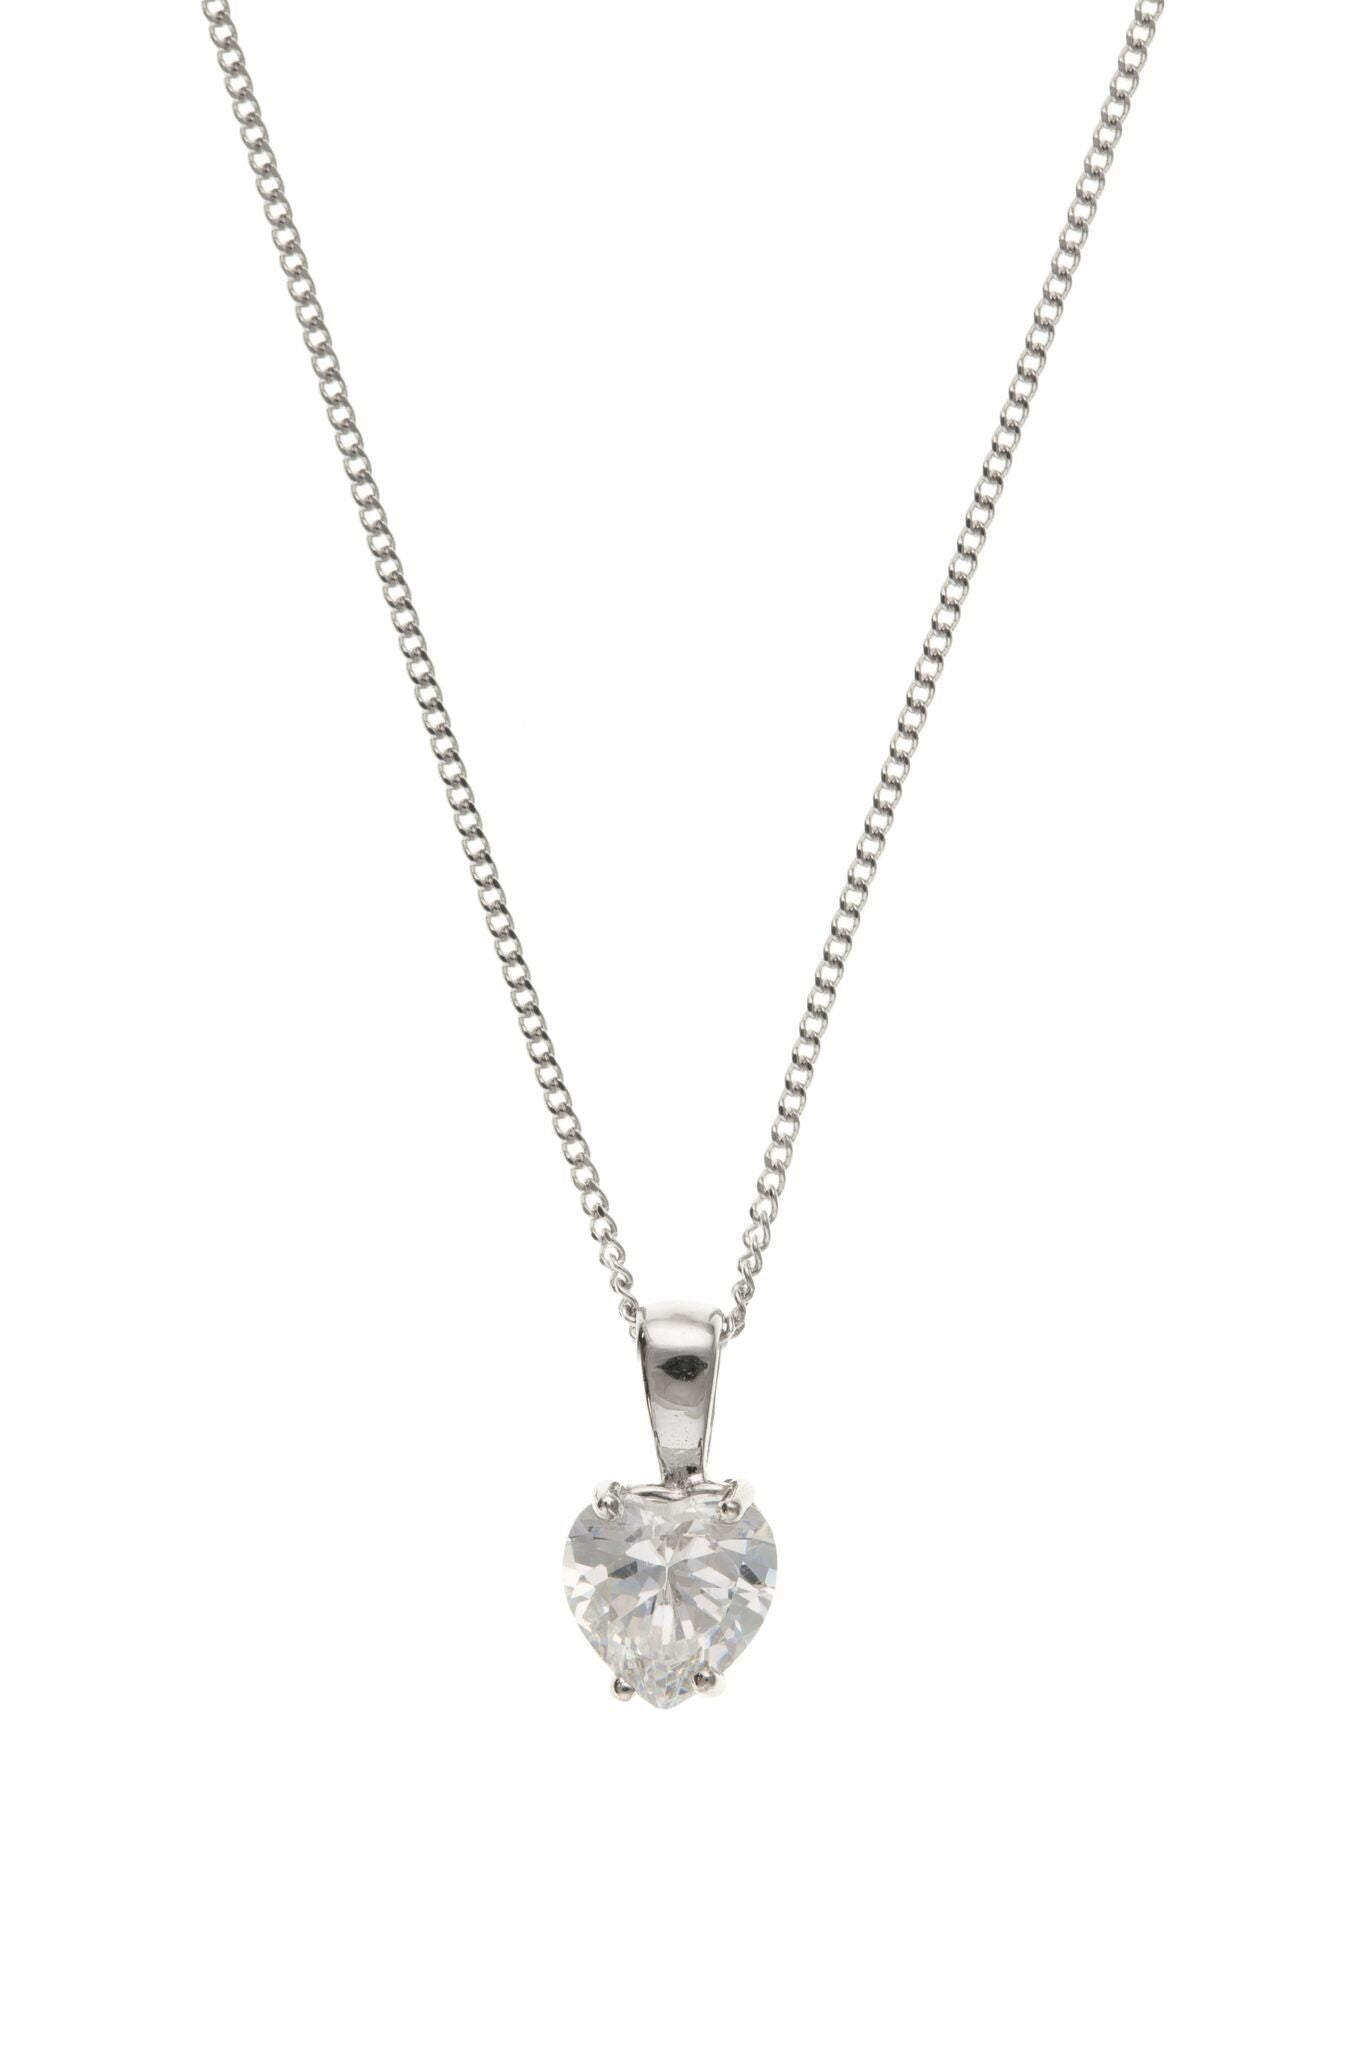 9ct White Gold Heart CZ Pendant